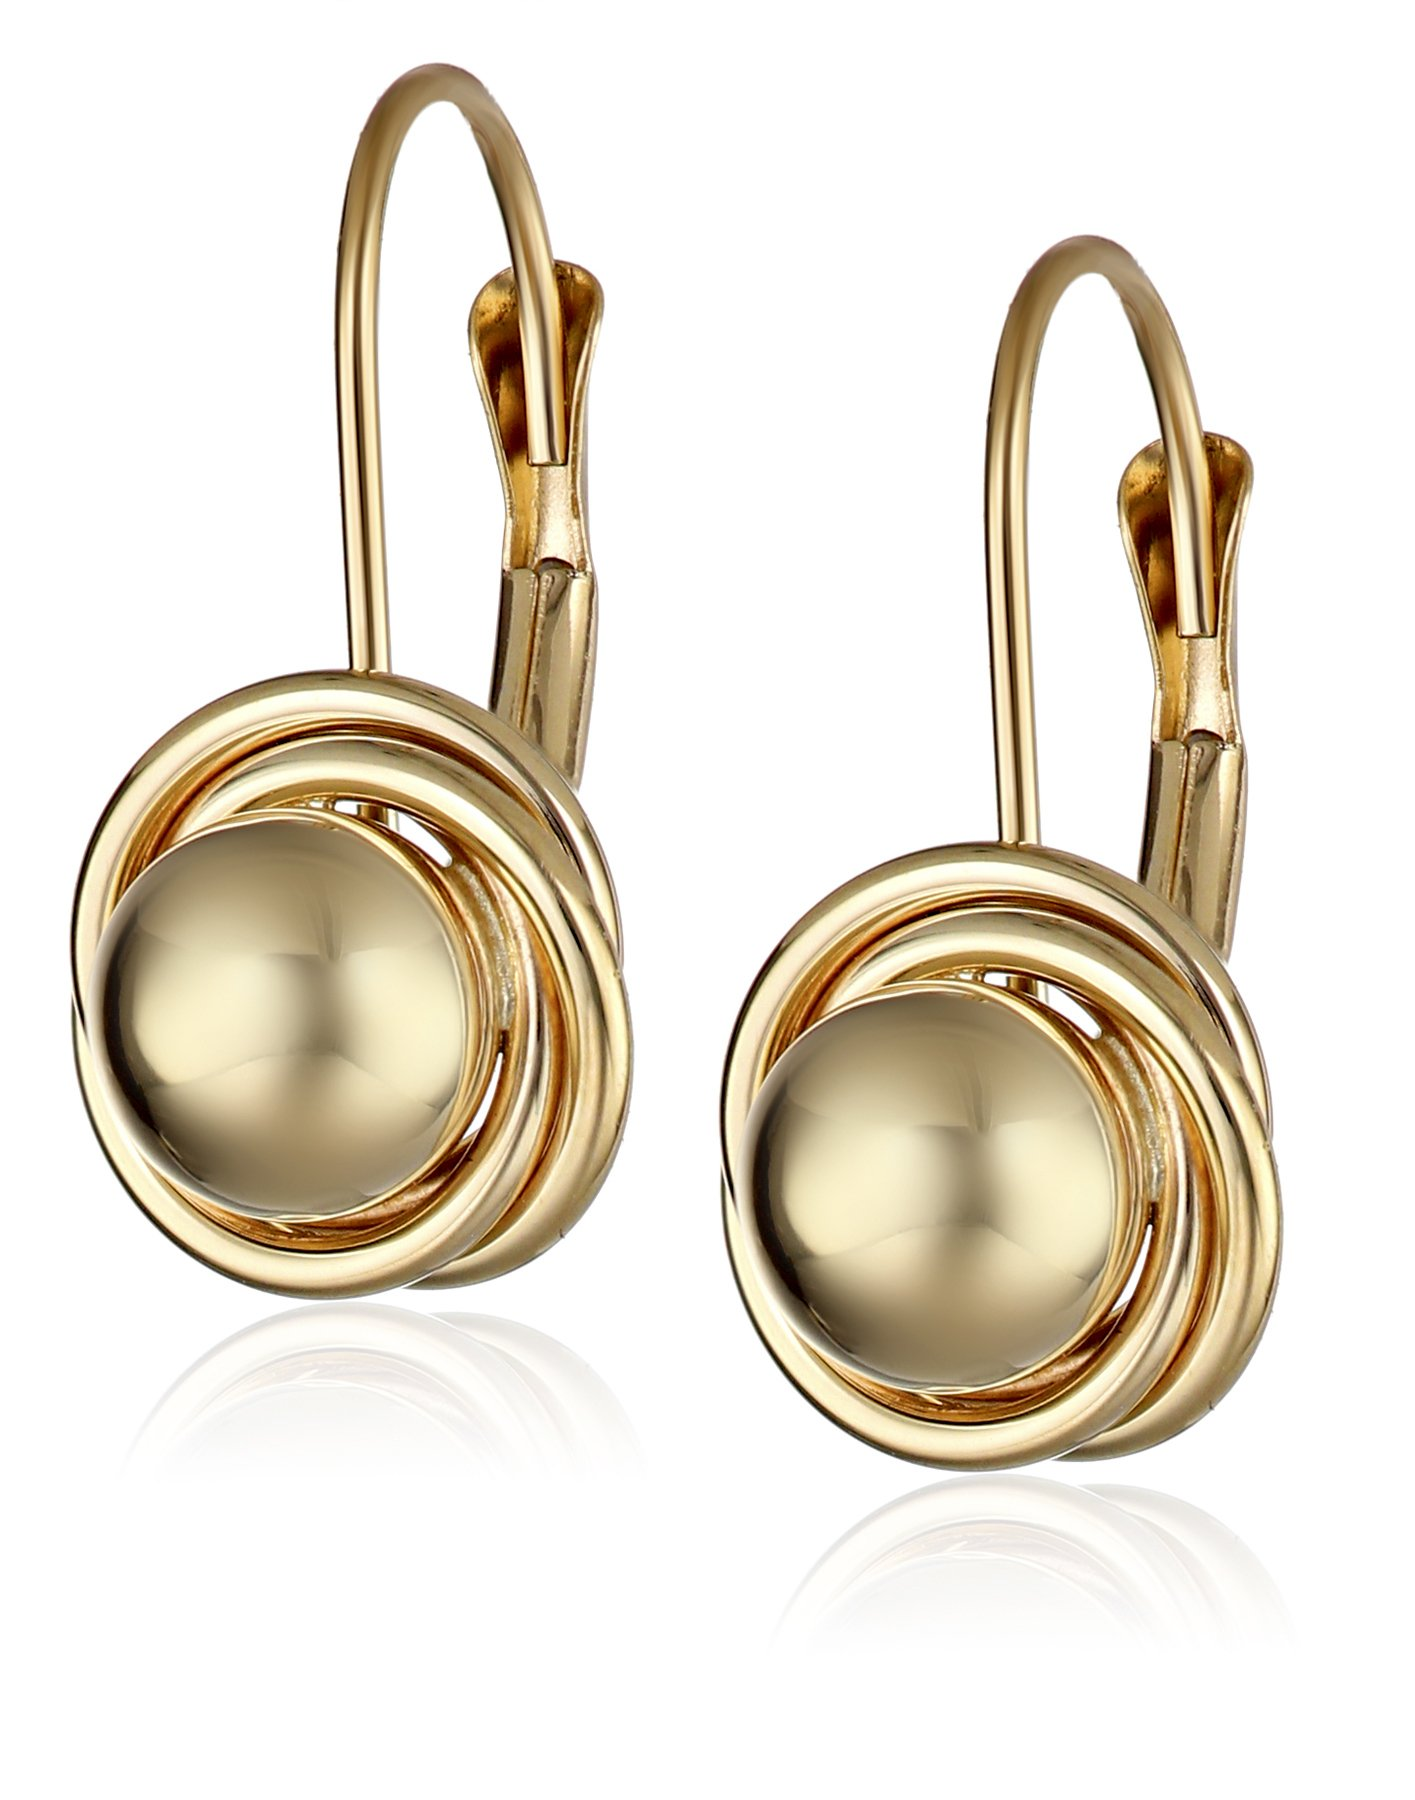 14k Yellow Gold Ball with Three Ring Earrings (6mm)